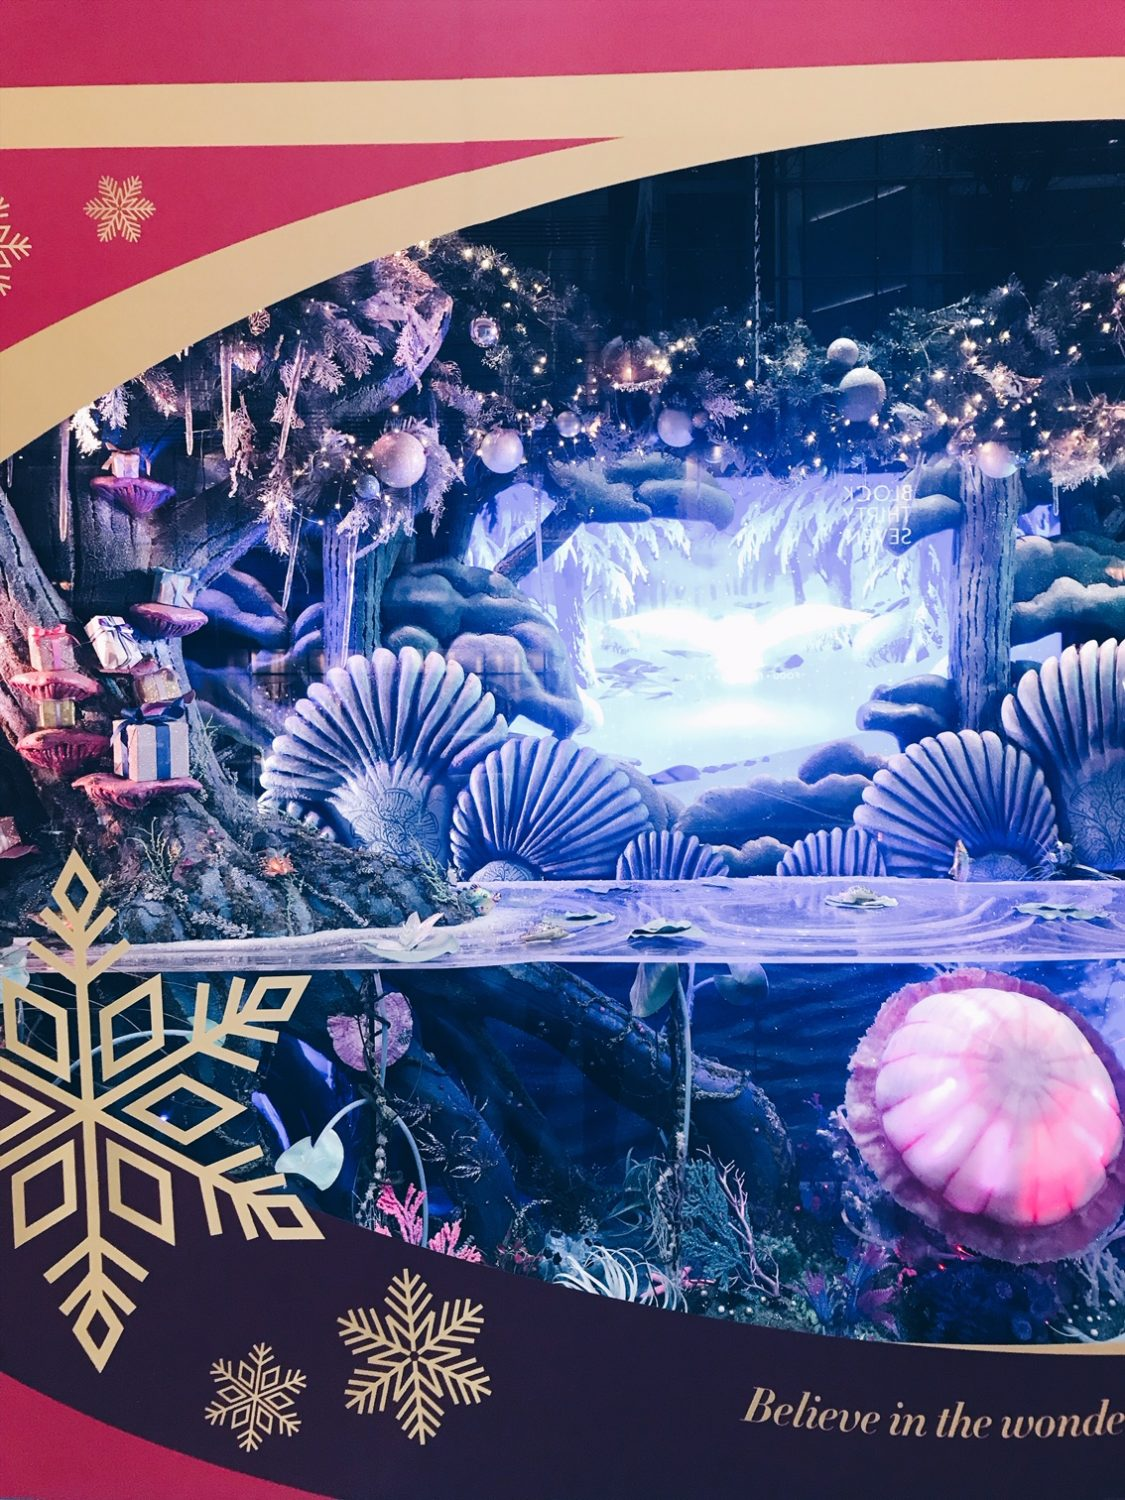 2018 Macy's Holiday Windows on State Street in Chicago